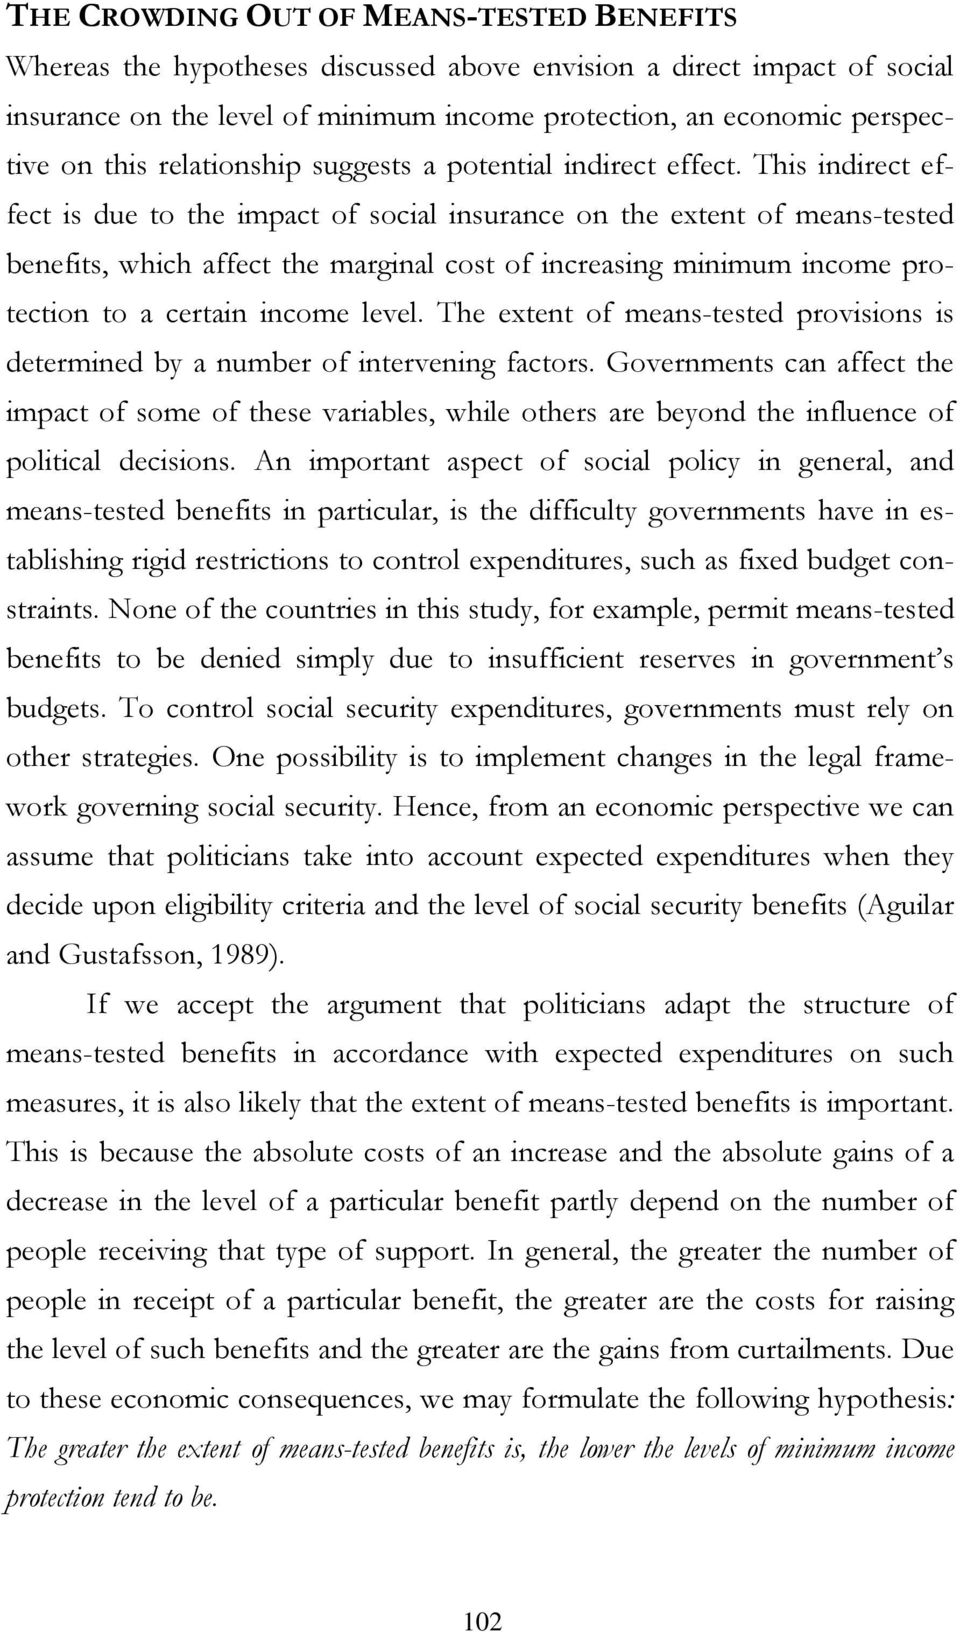 This indirect effect is due to the impact of social insurance on the extent of means-tested benefits, which affect the marginal cost of increasing minimum income protection to a certain income level.